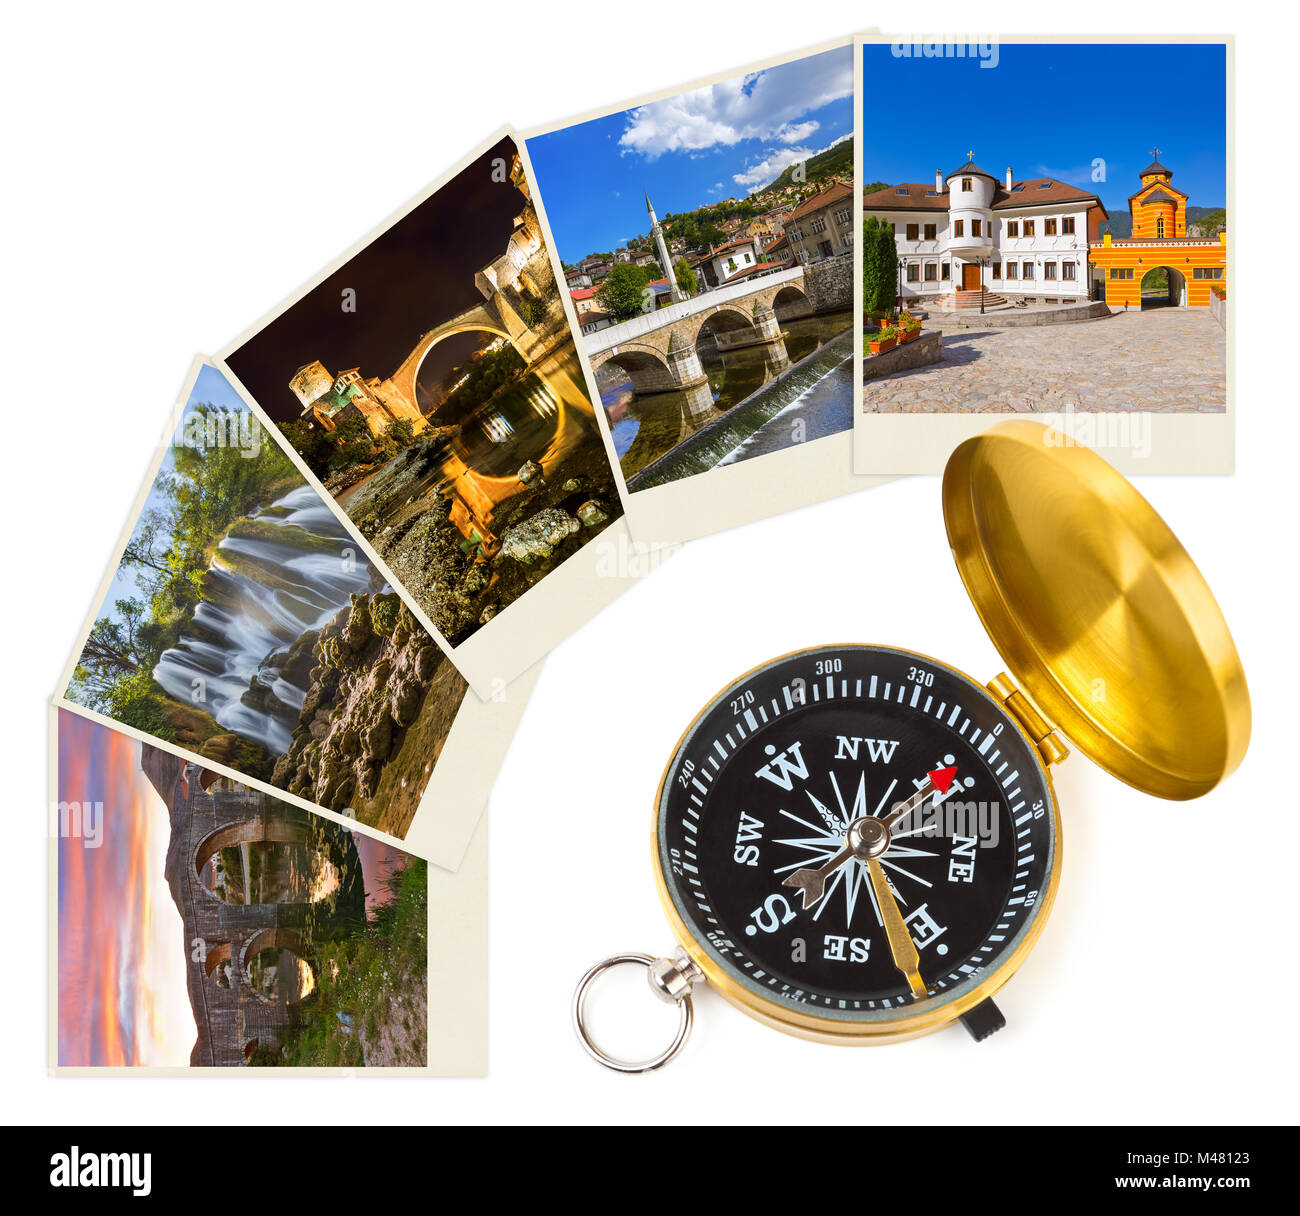 Bosnia and Herzegovina travel images (my photos) and compass - Stock Image